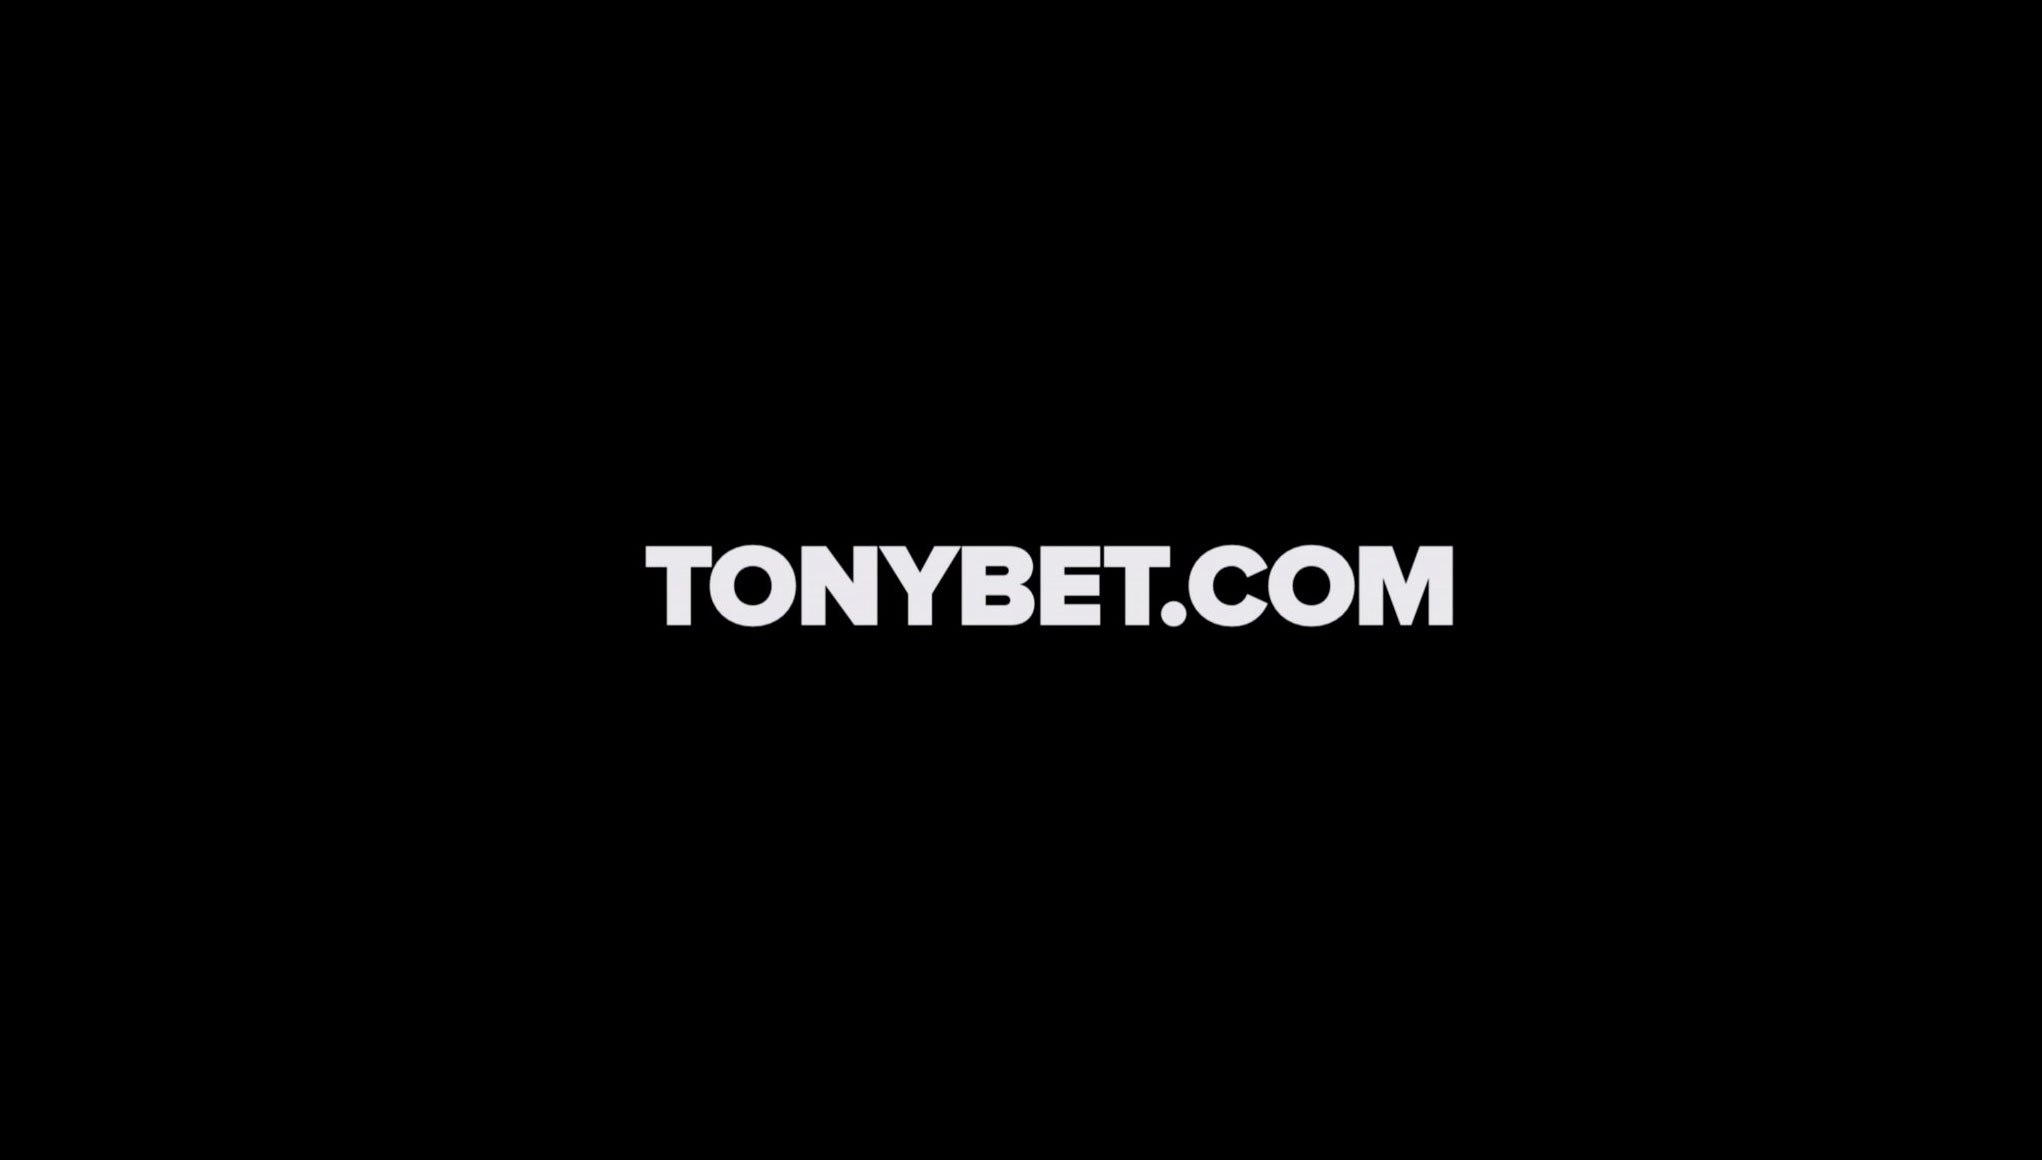 Tonybet Poker Review